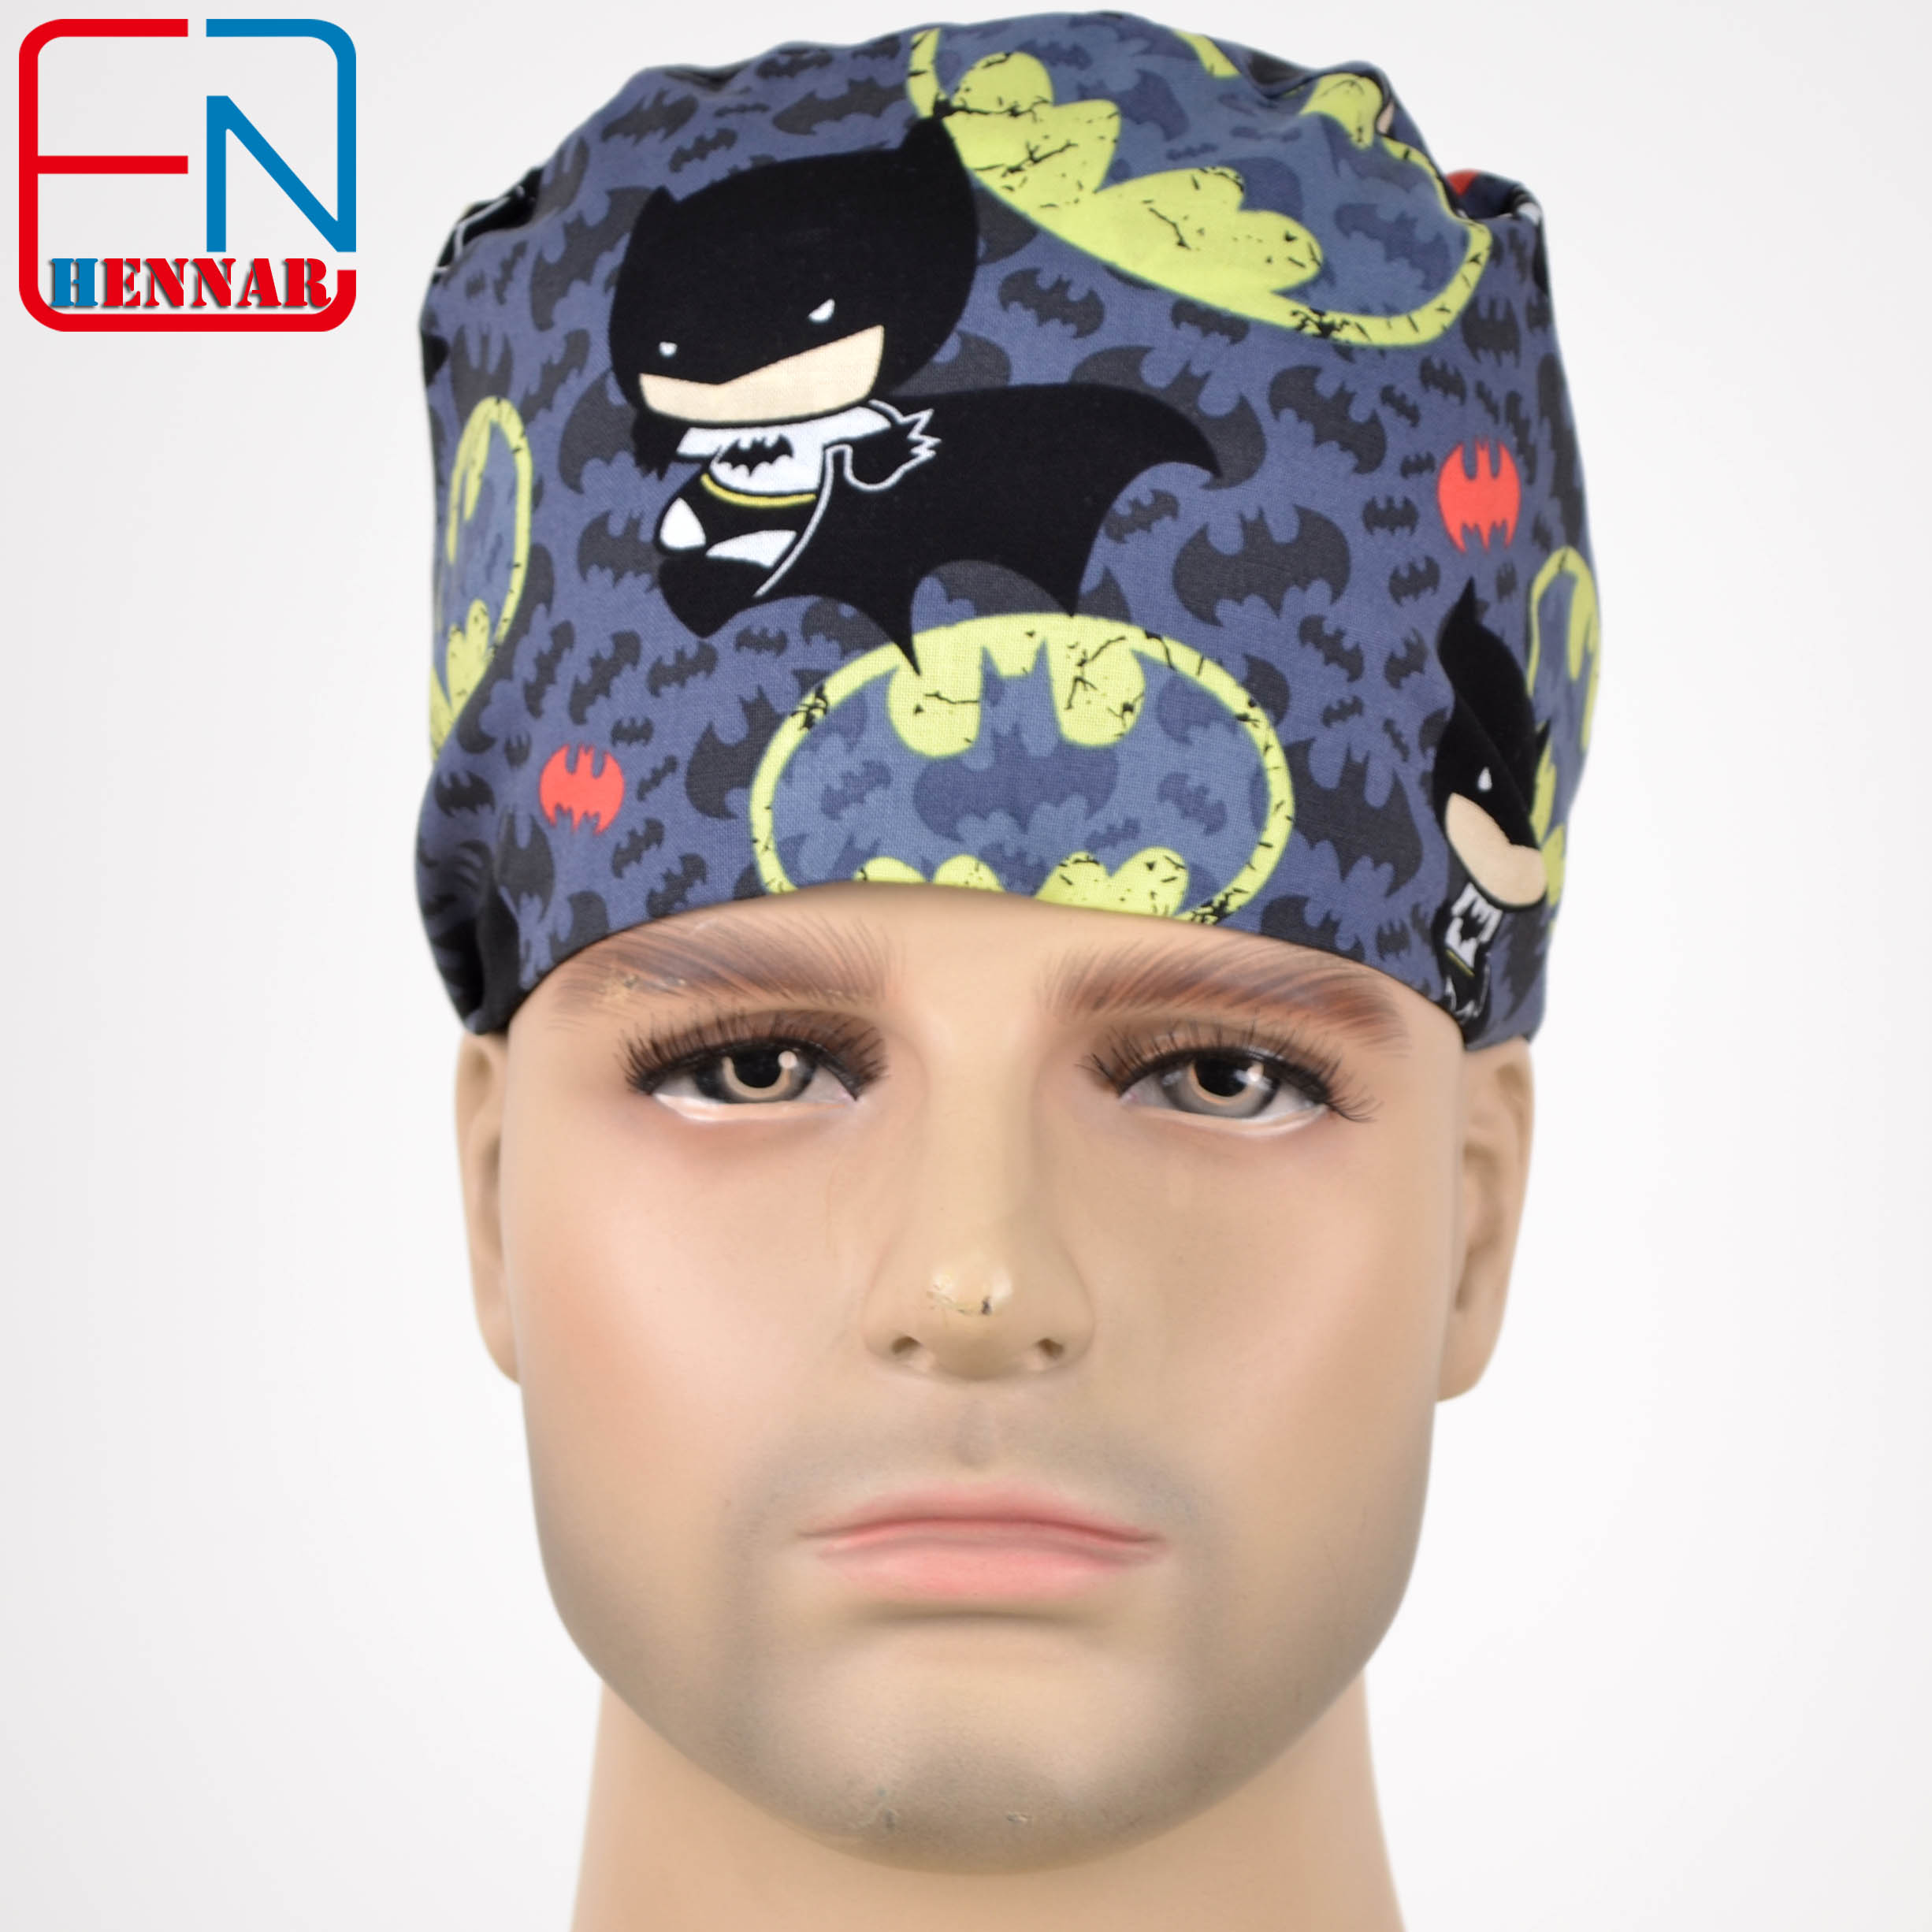 Hennar Men's Scrub Caps Masks 100% Cotton Adjustable Elastic Bands Surgical Scrub Caps Medical Hospital Doctor Headwear Cap Mask